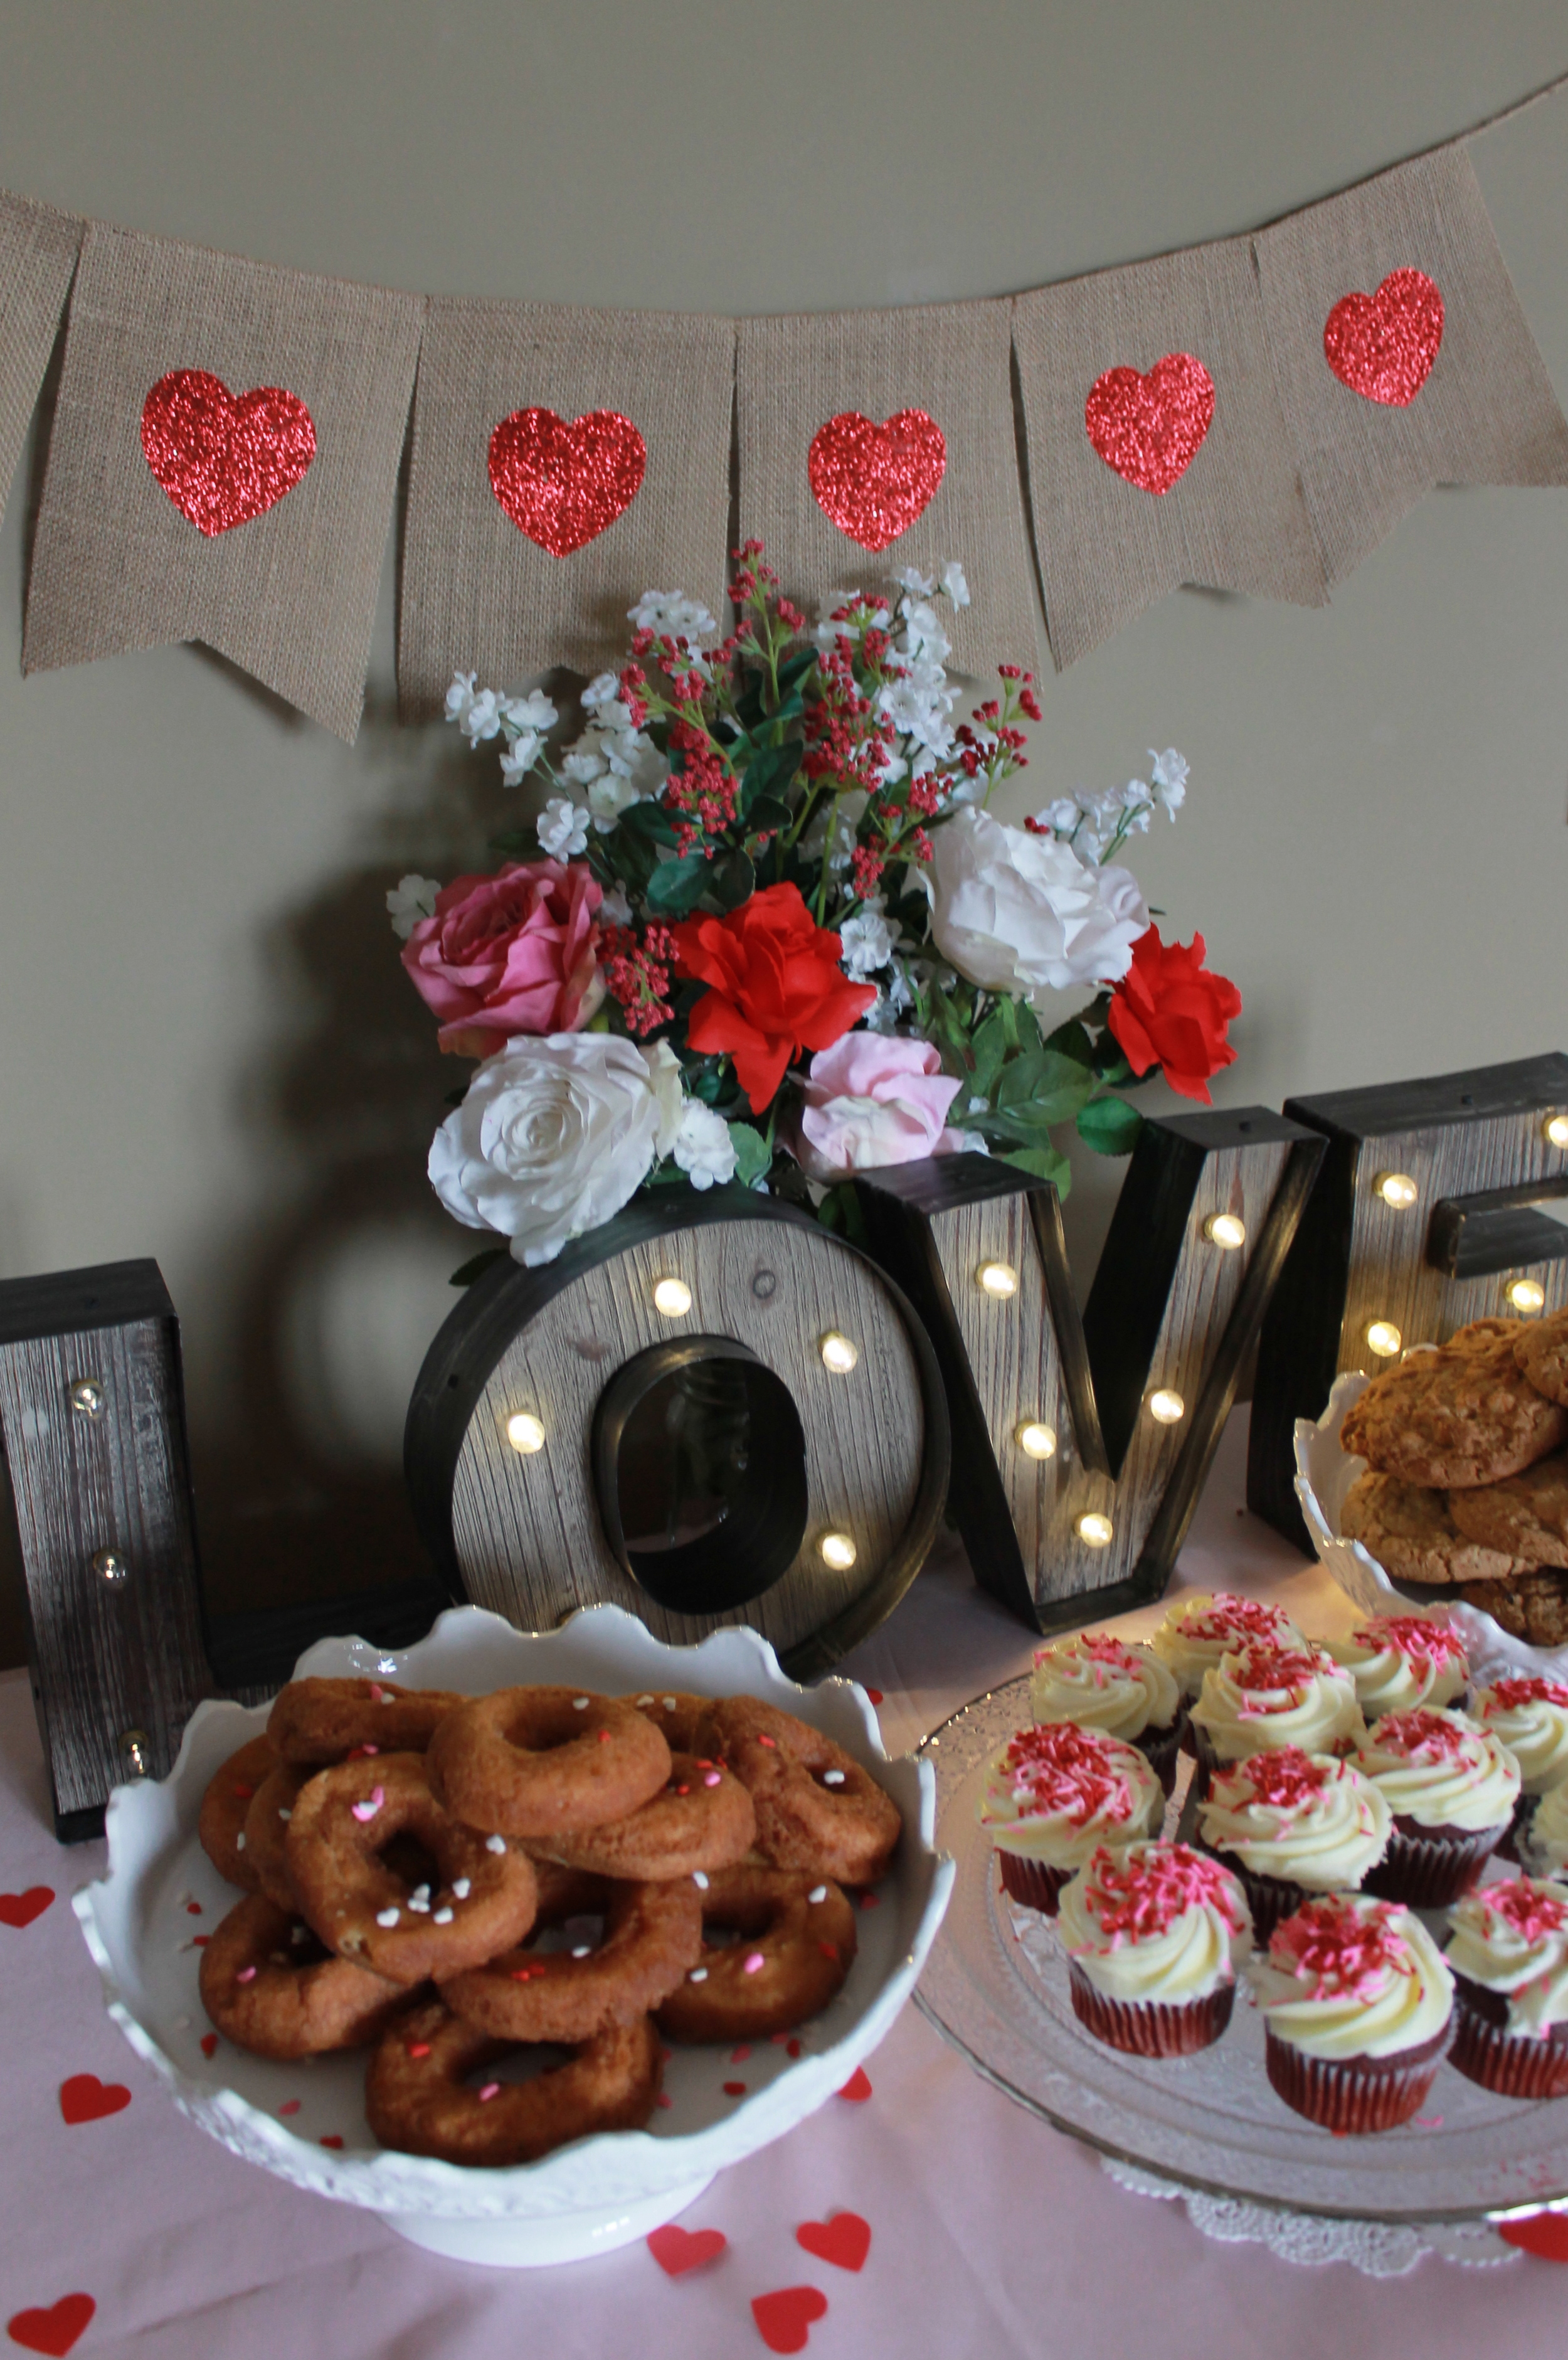 Featured product: LOVE Marquee Sign, Silver Rimmed Glass Cake Stand, Royal Cake Stand